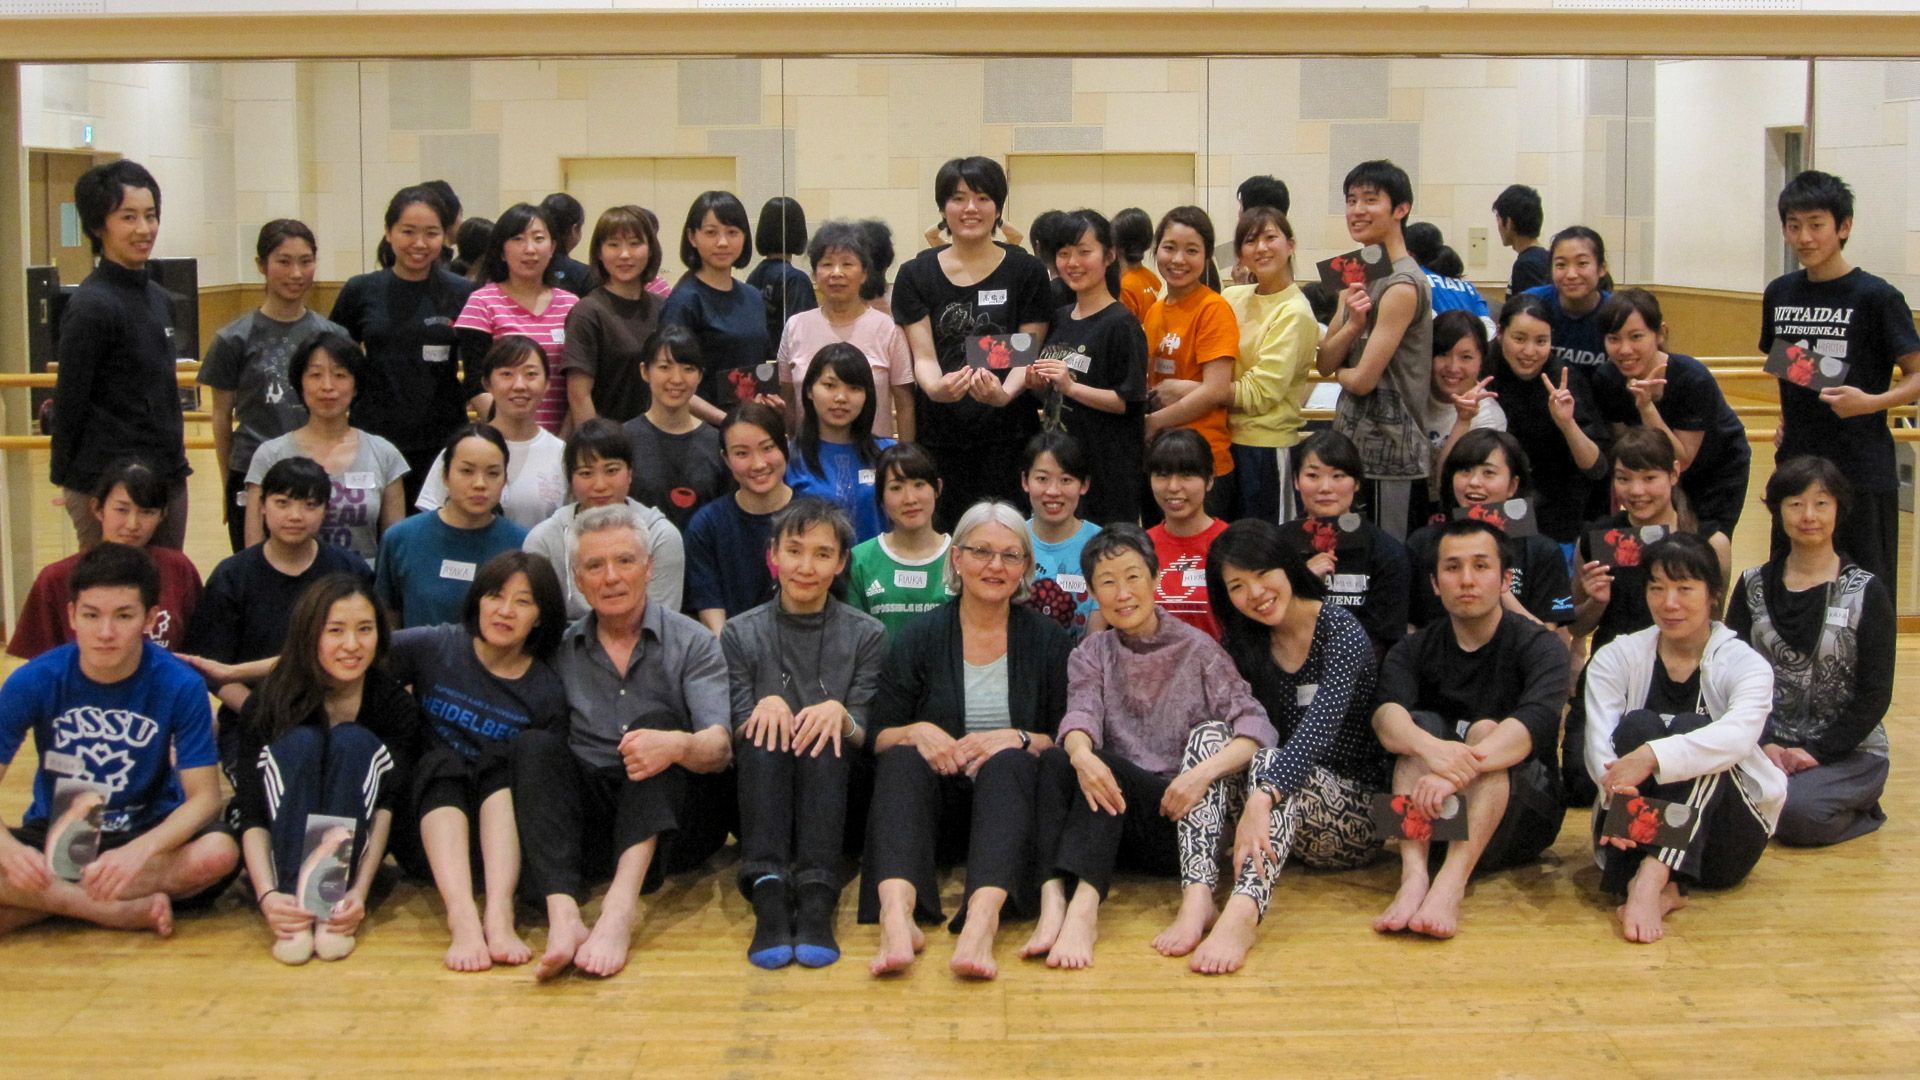 Tanzdidaktik-Workshop-Teilnehmende und Prof. Kazuko Takahashi, president of Japan Association of Physical Education for Women, Yokohama National University